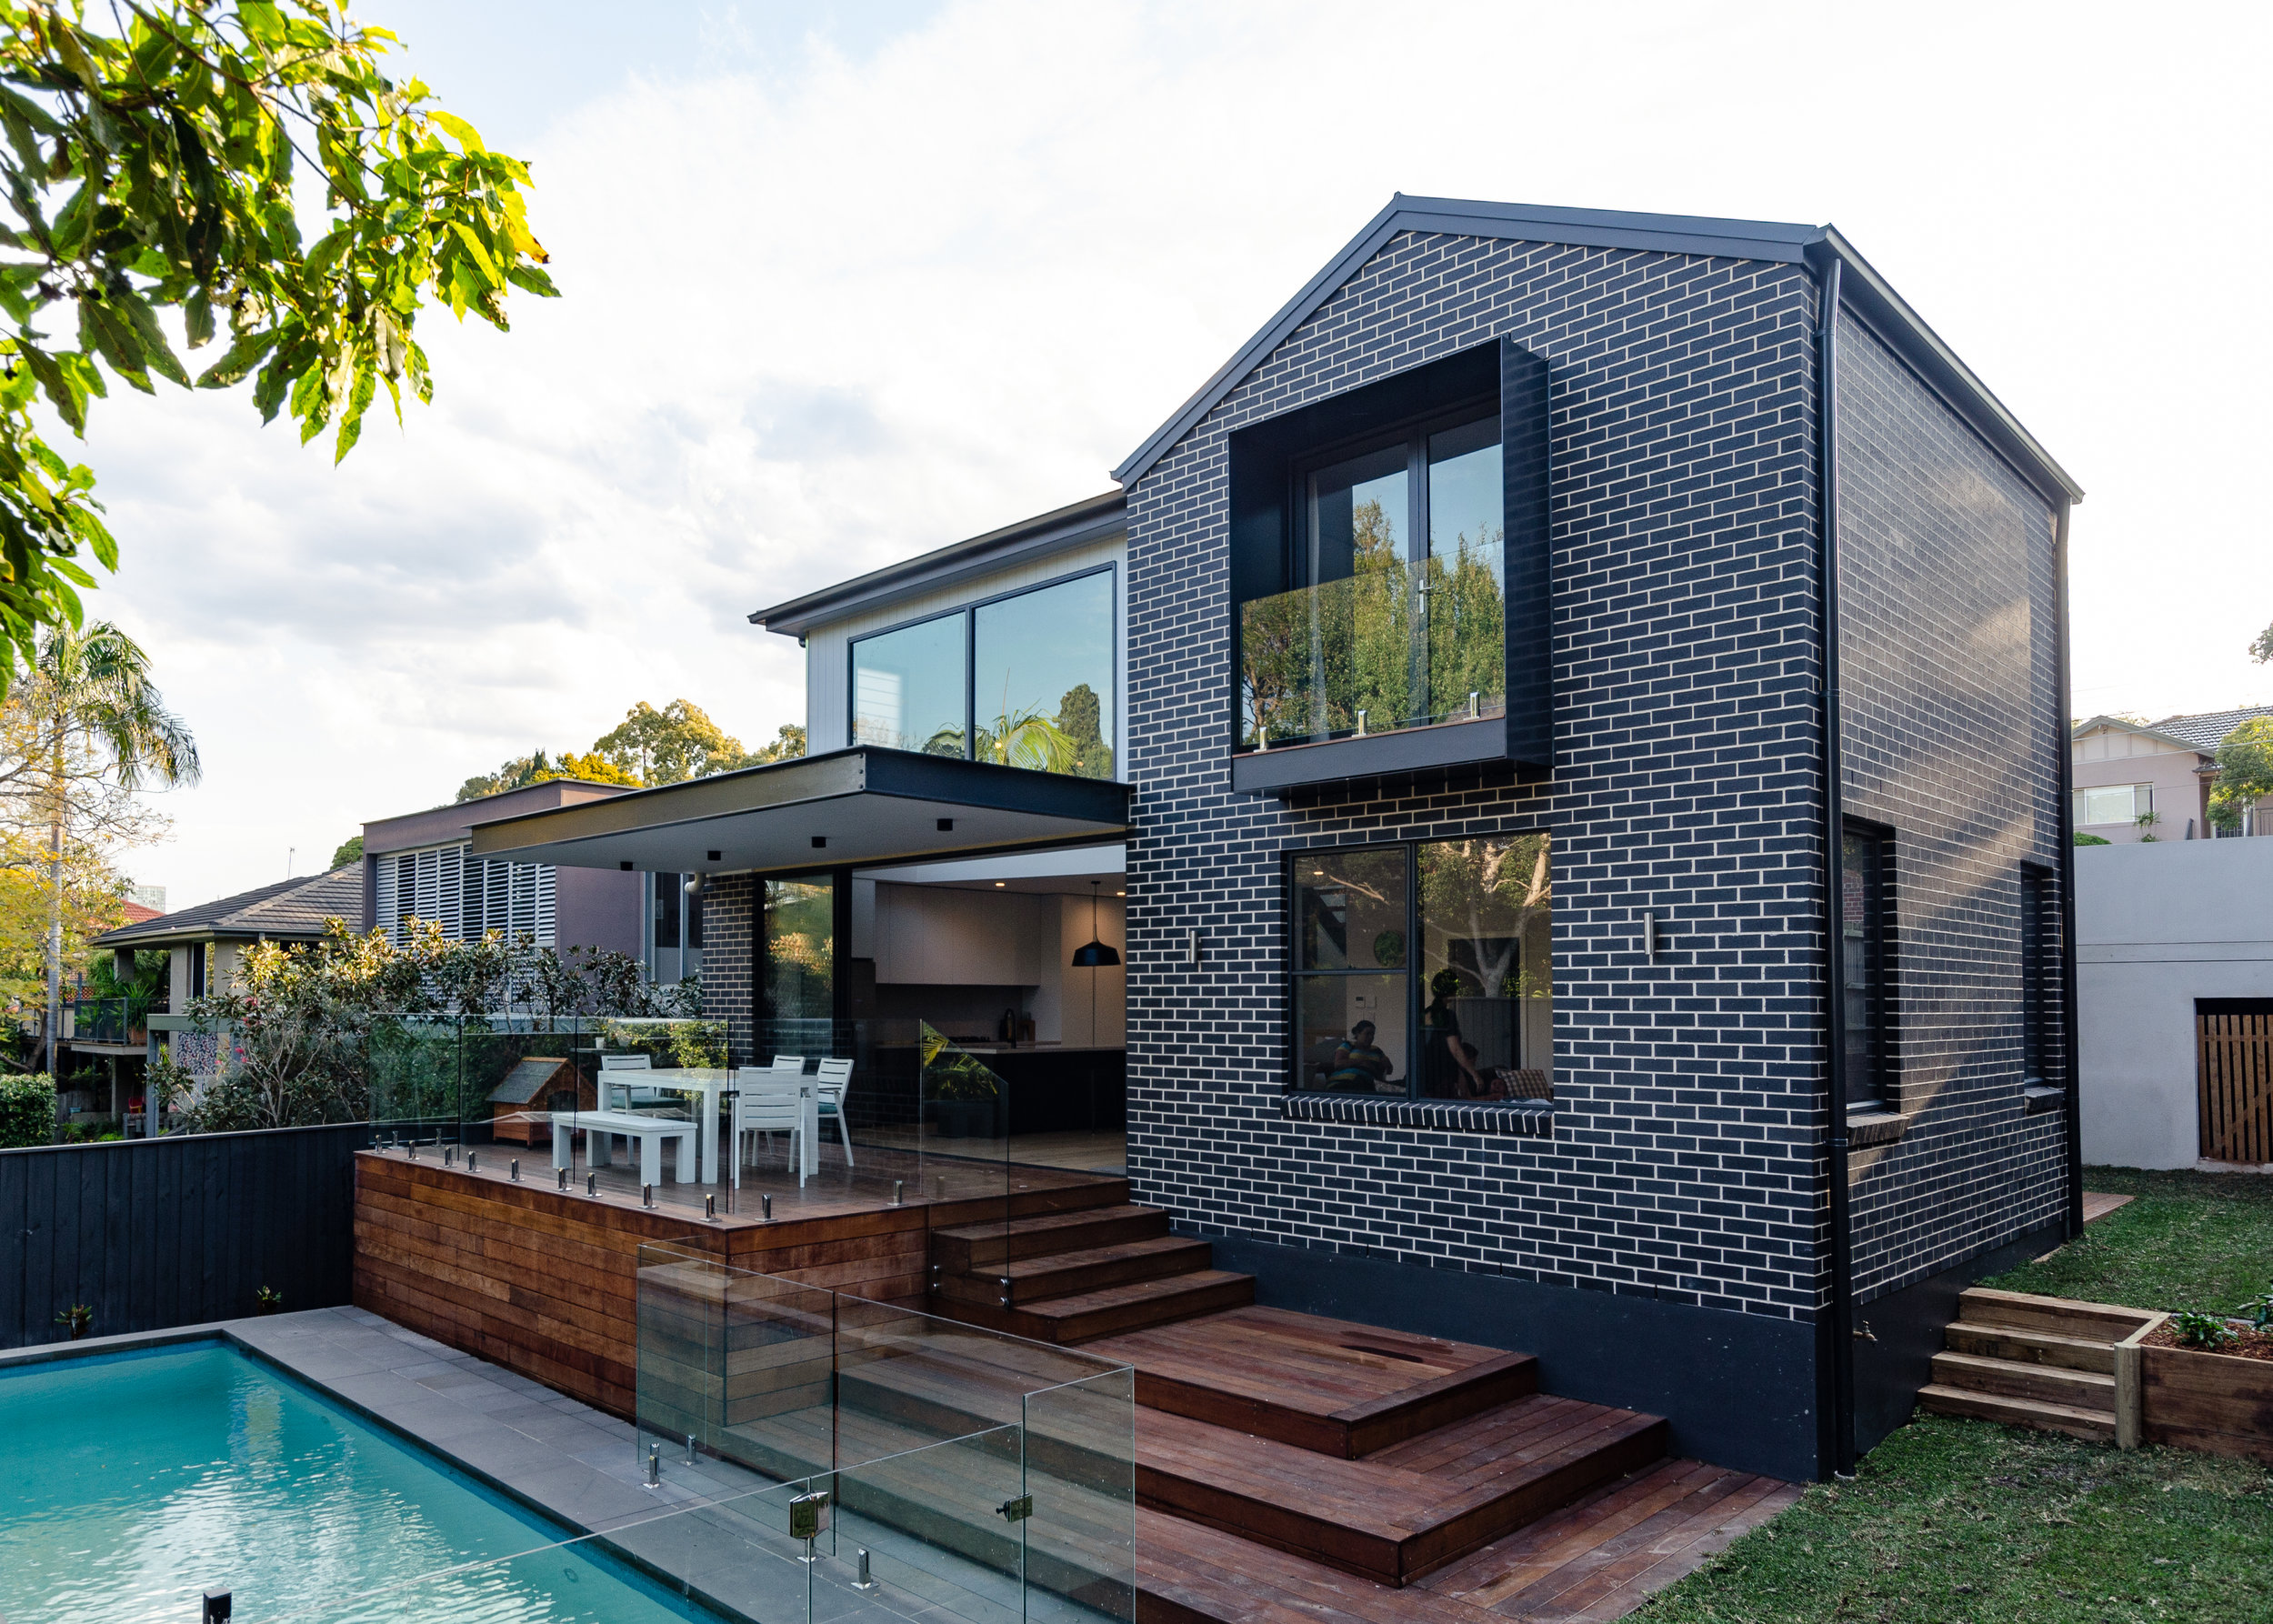 Willoughby Project 1 - Alterations & Additions